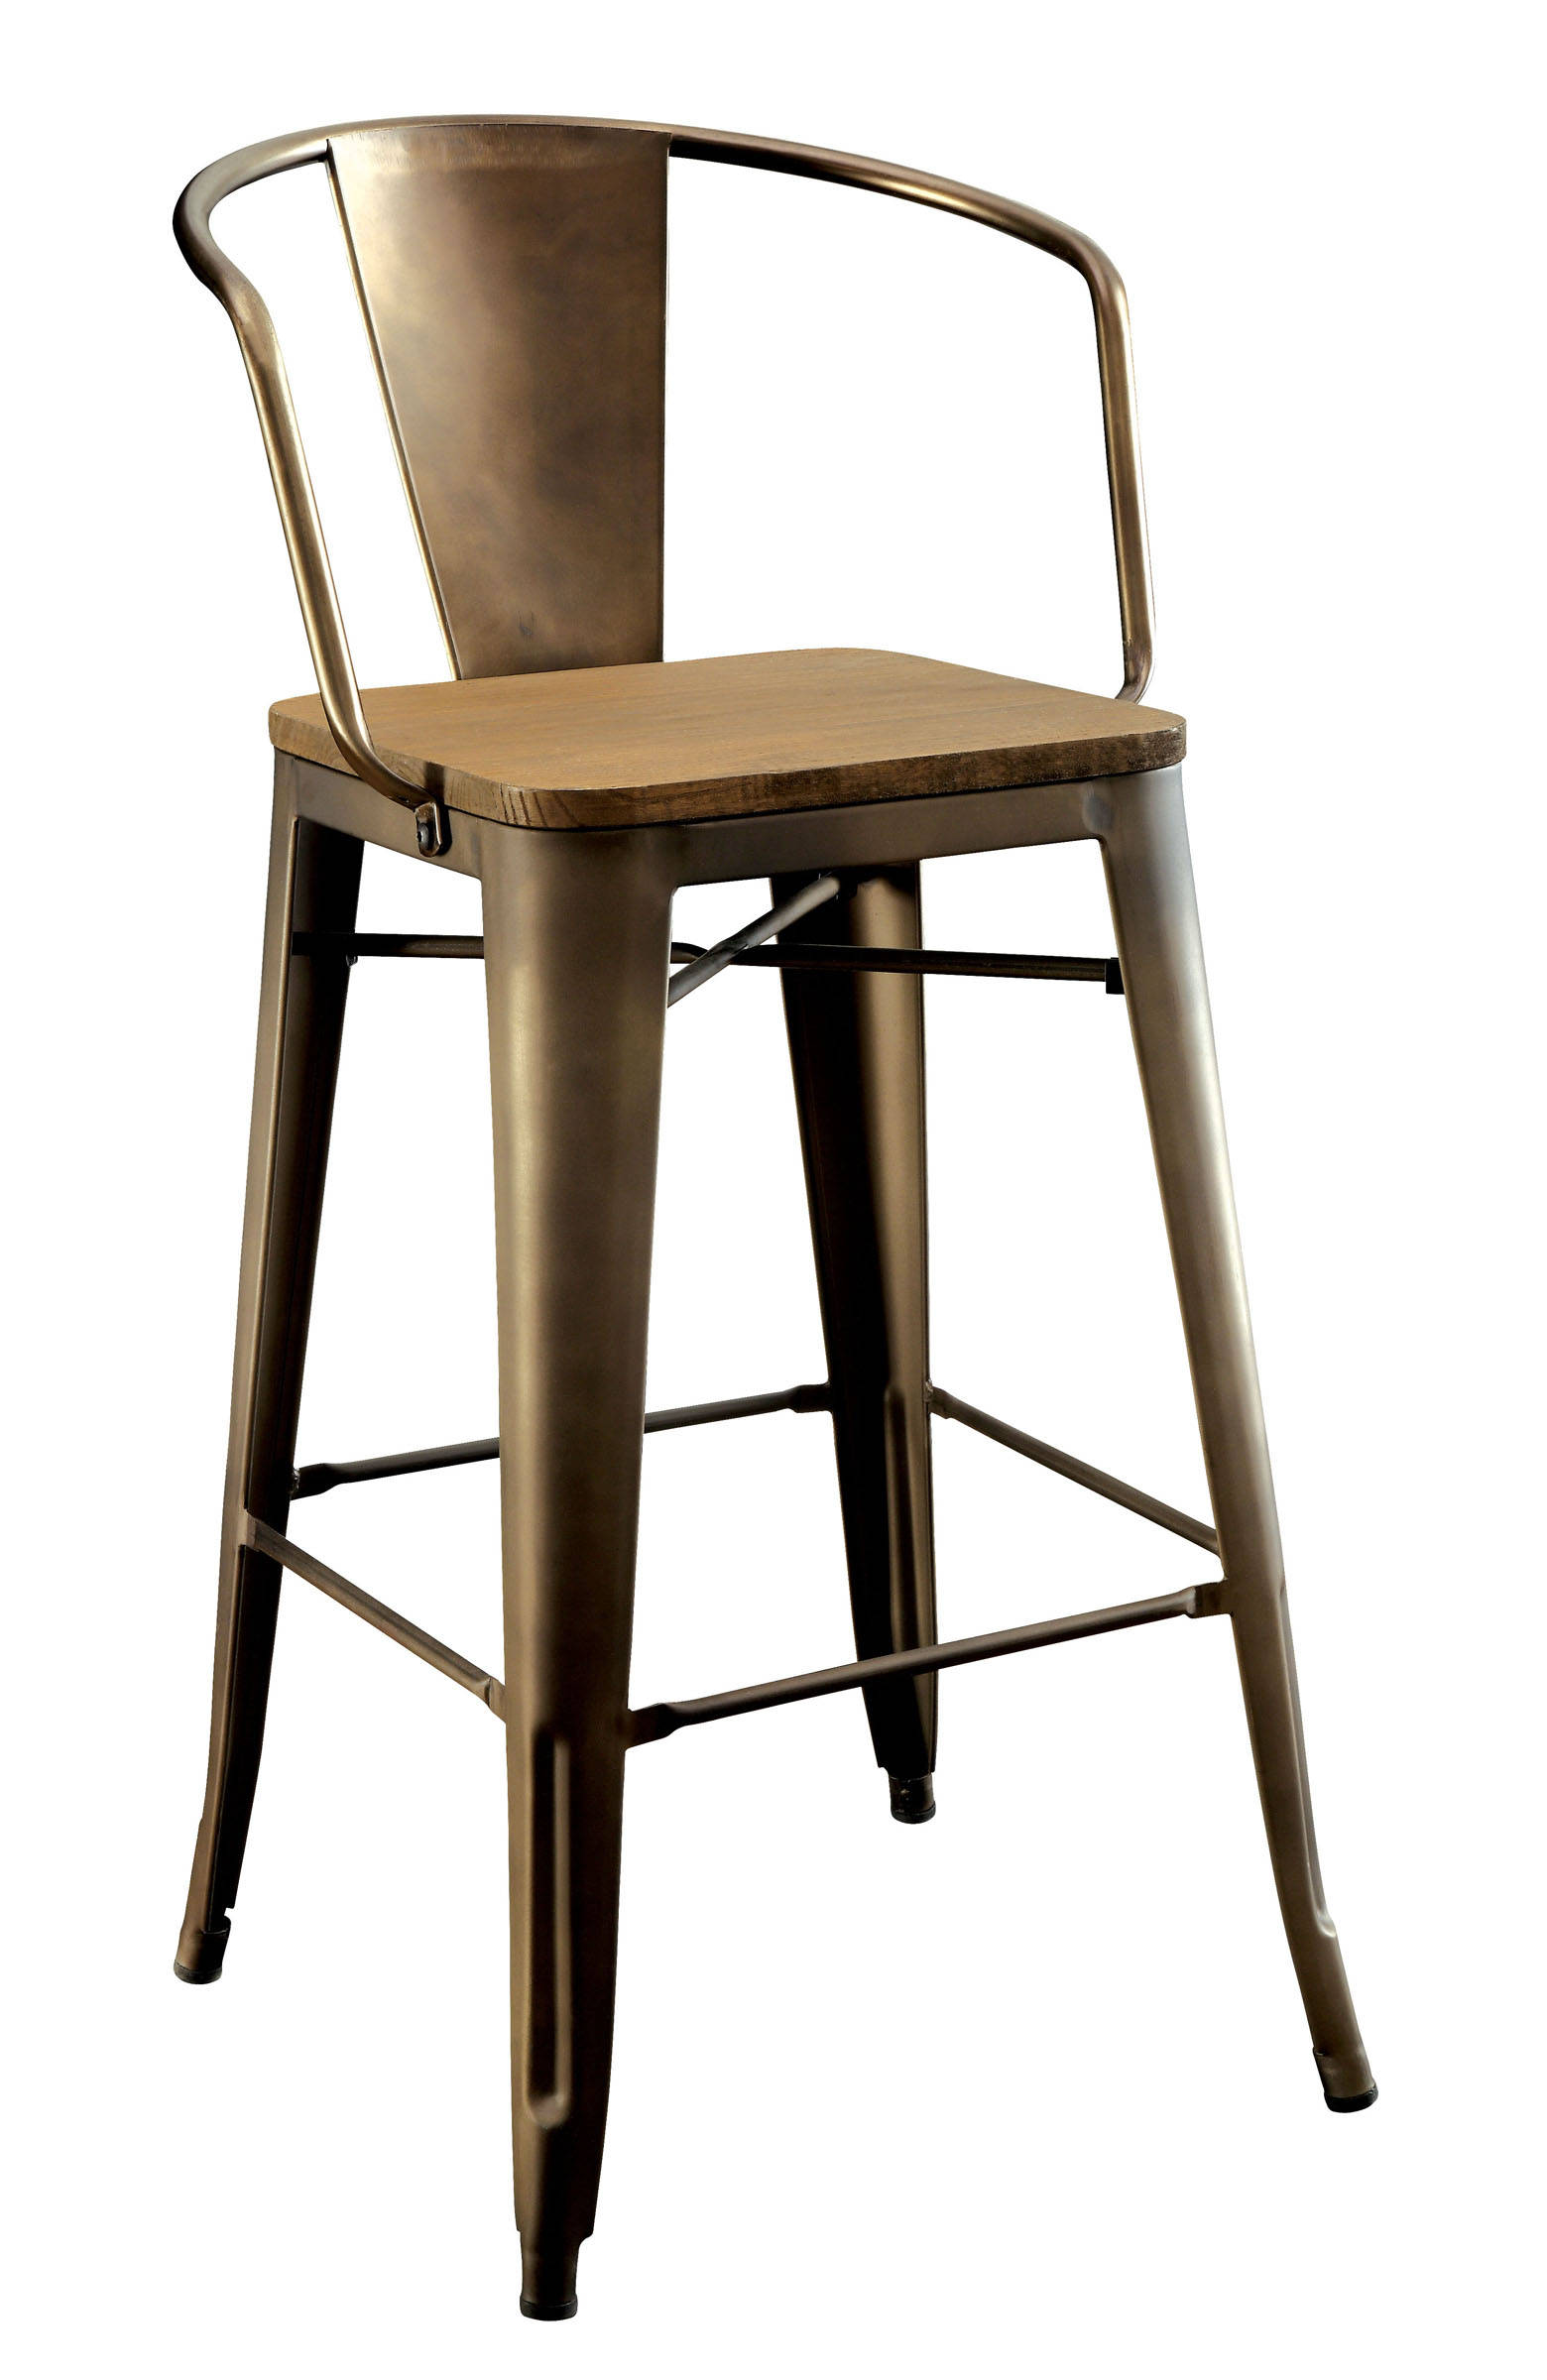 Outstanding 2 Furniture Of America Cooper Ii Counter Height Chairs Alphanode Cool Chair Designs And Ideas Alphanodeonline